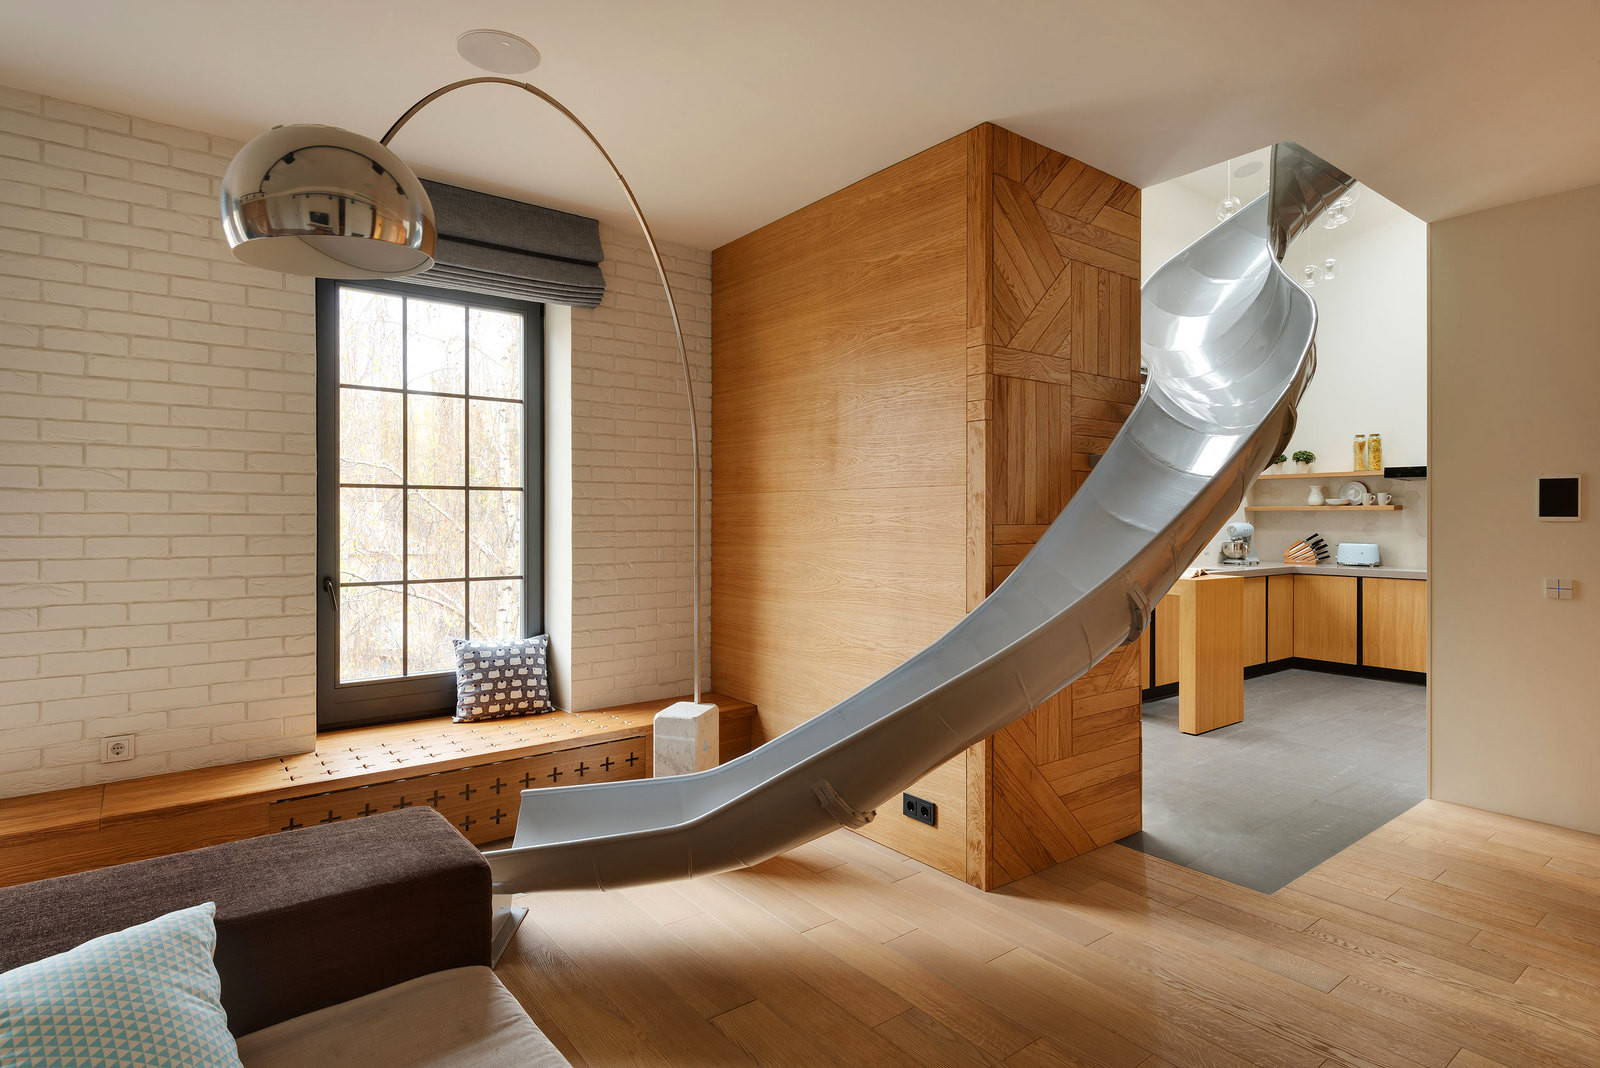 Apartment-with-a-slide-just3ds.com-10